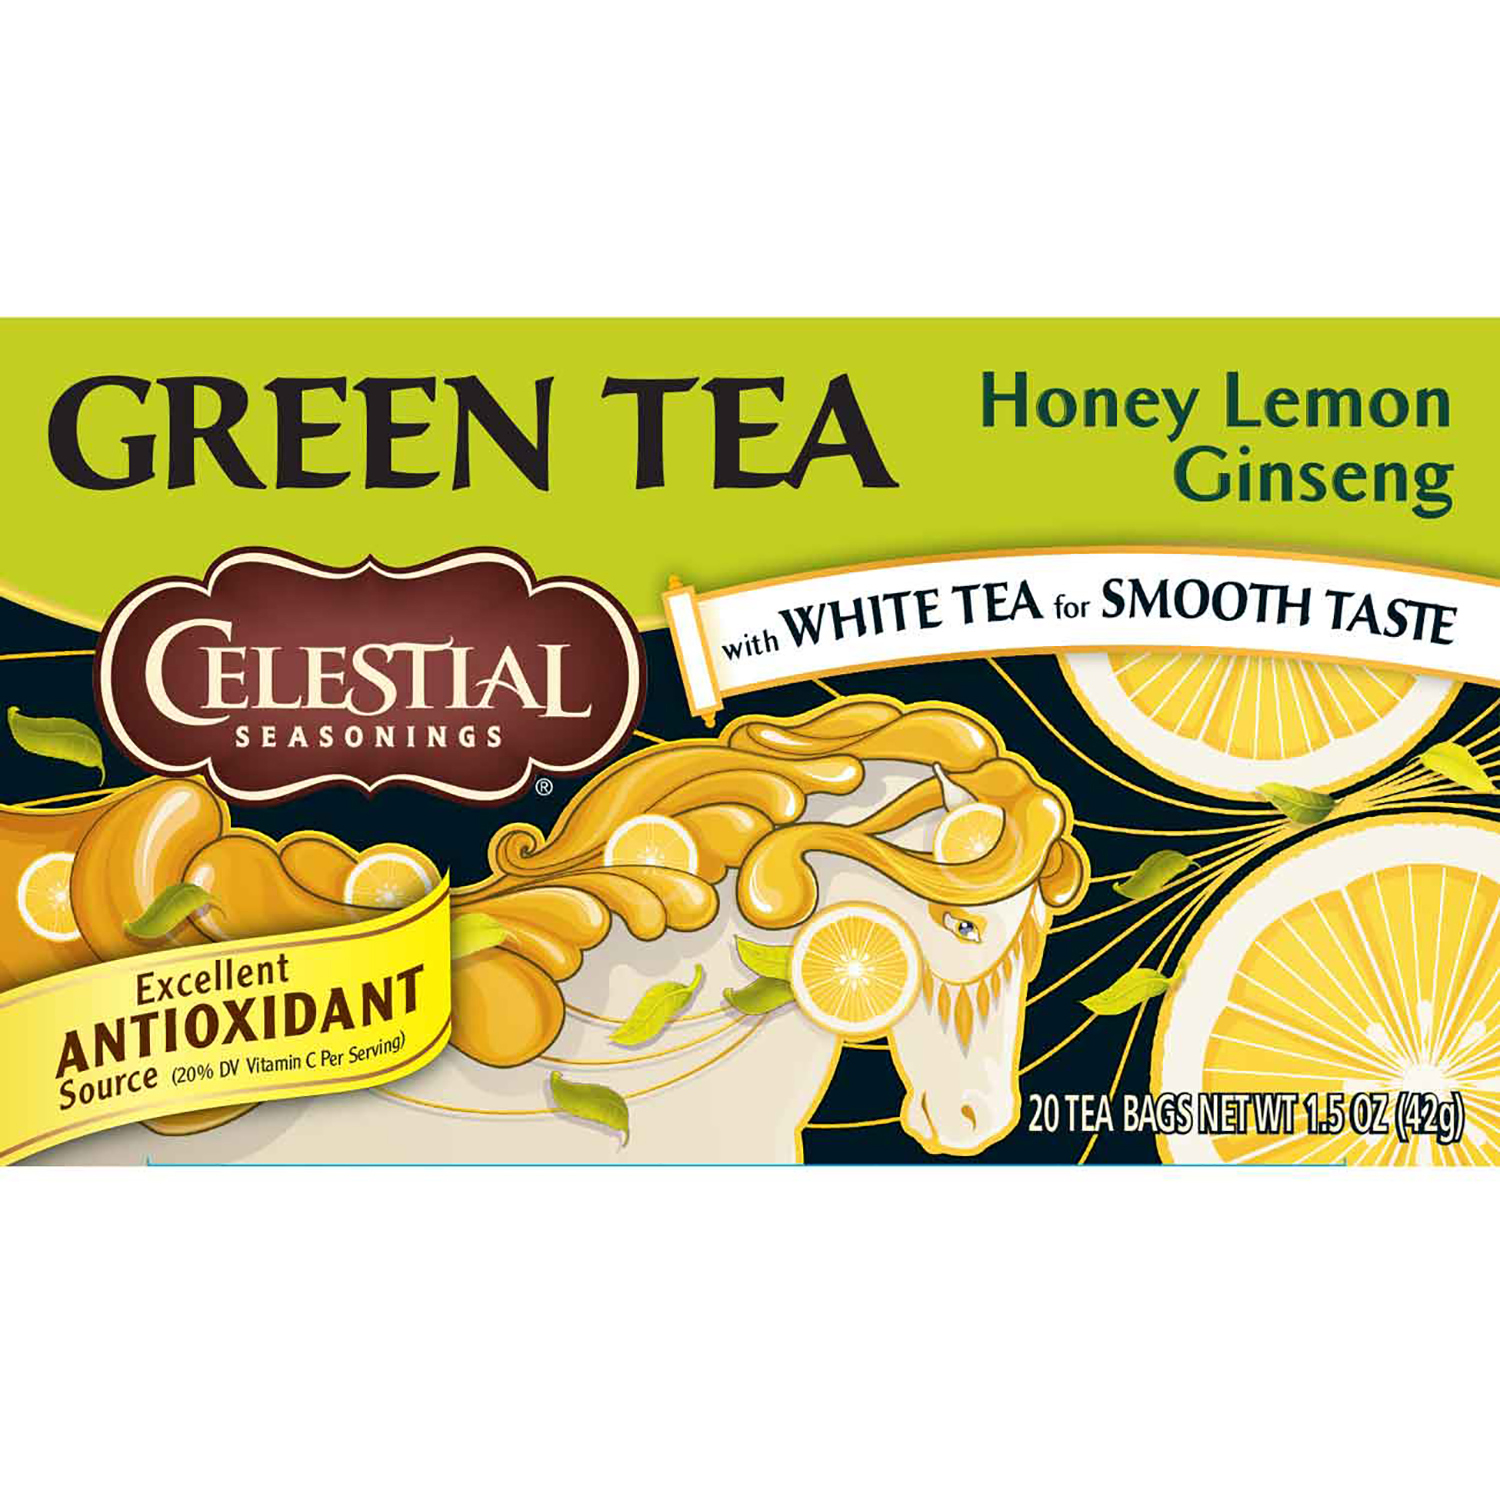 Celestial Seasonings, Green Tea, Honey Lemon Ginseng, Tea Bags, 20 Ct